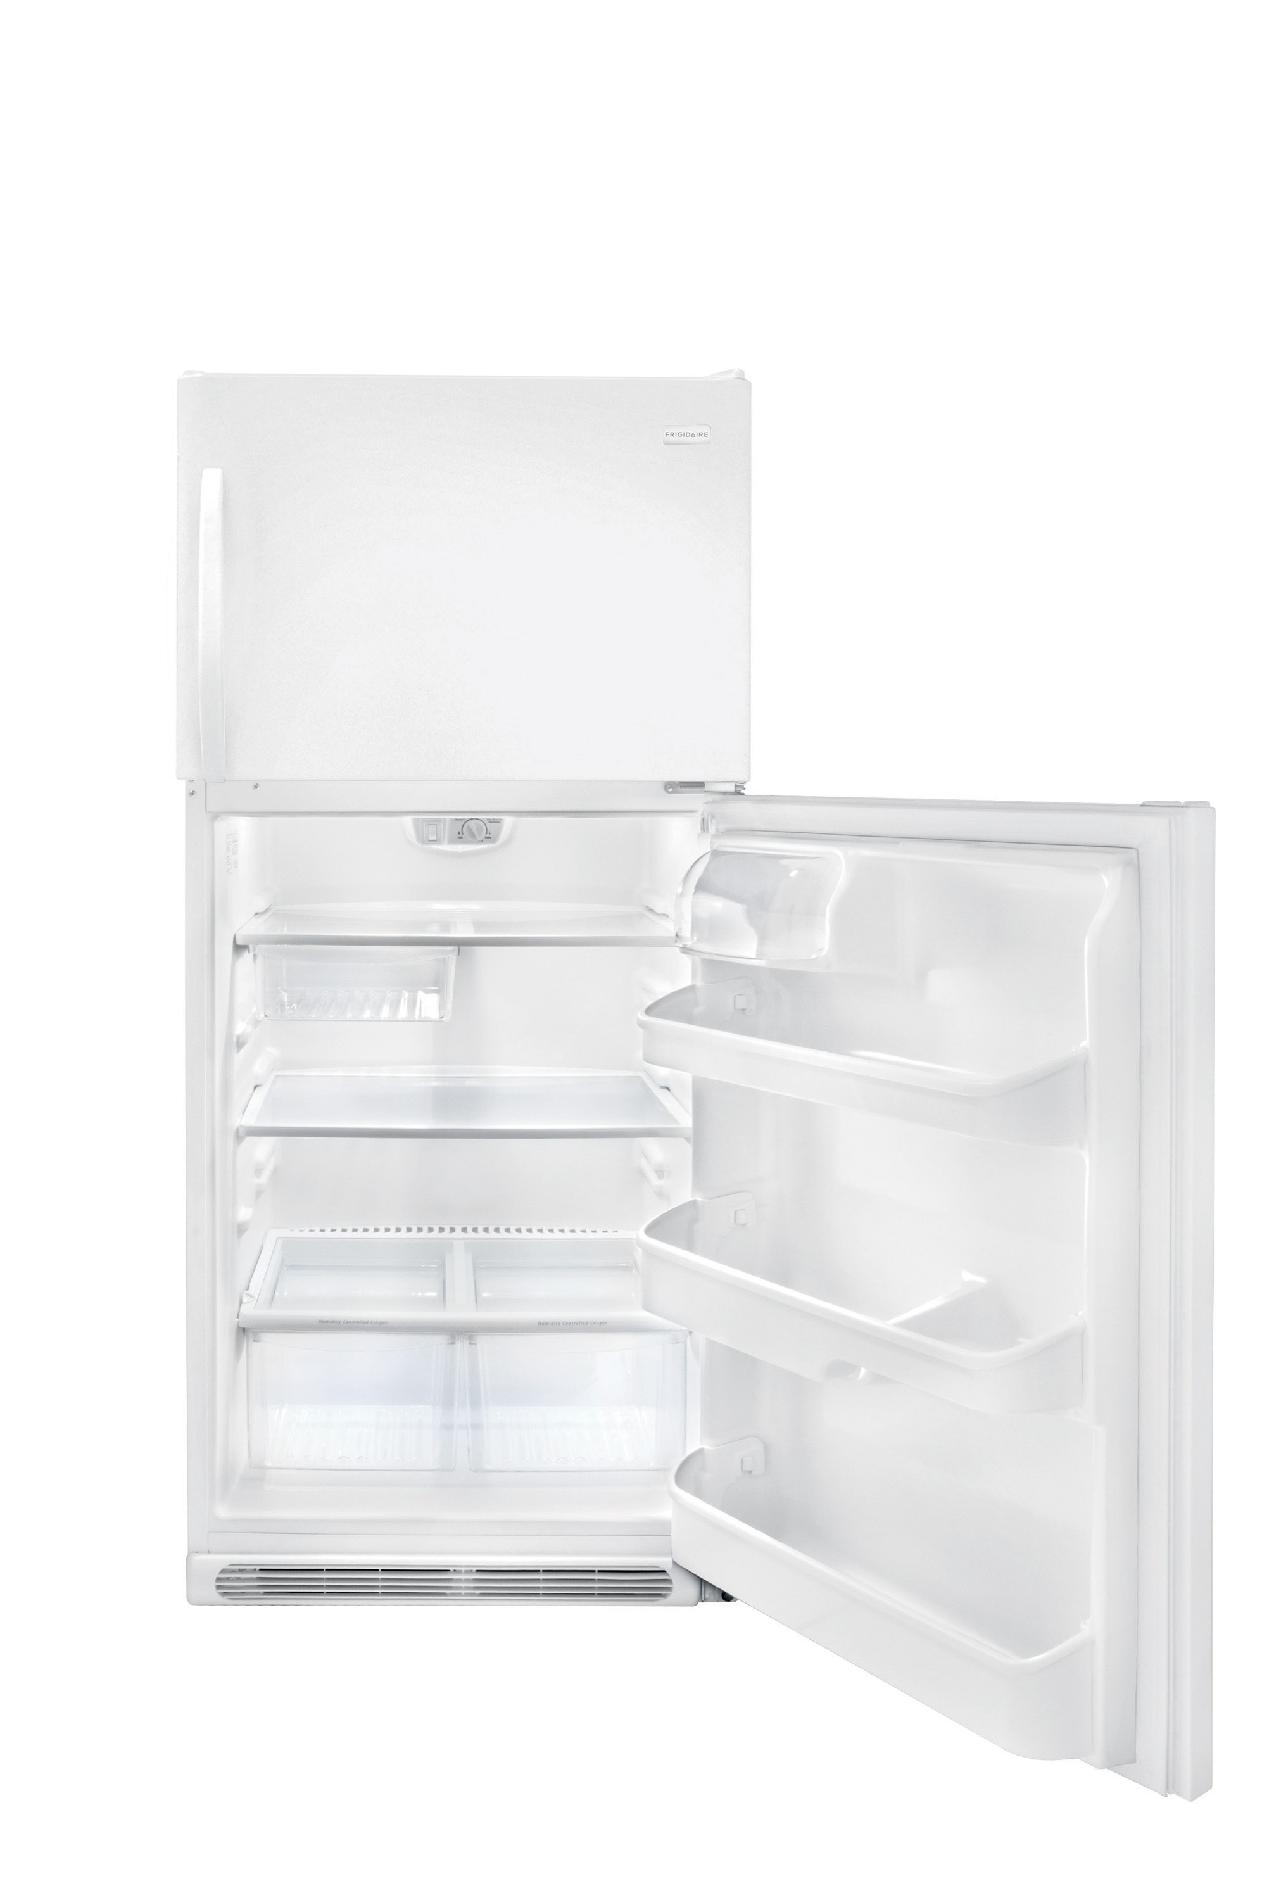 Frigidaire 20.6 cu. ft. Top-Freezer Refrigerator - White